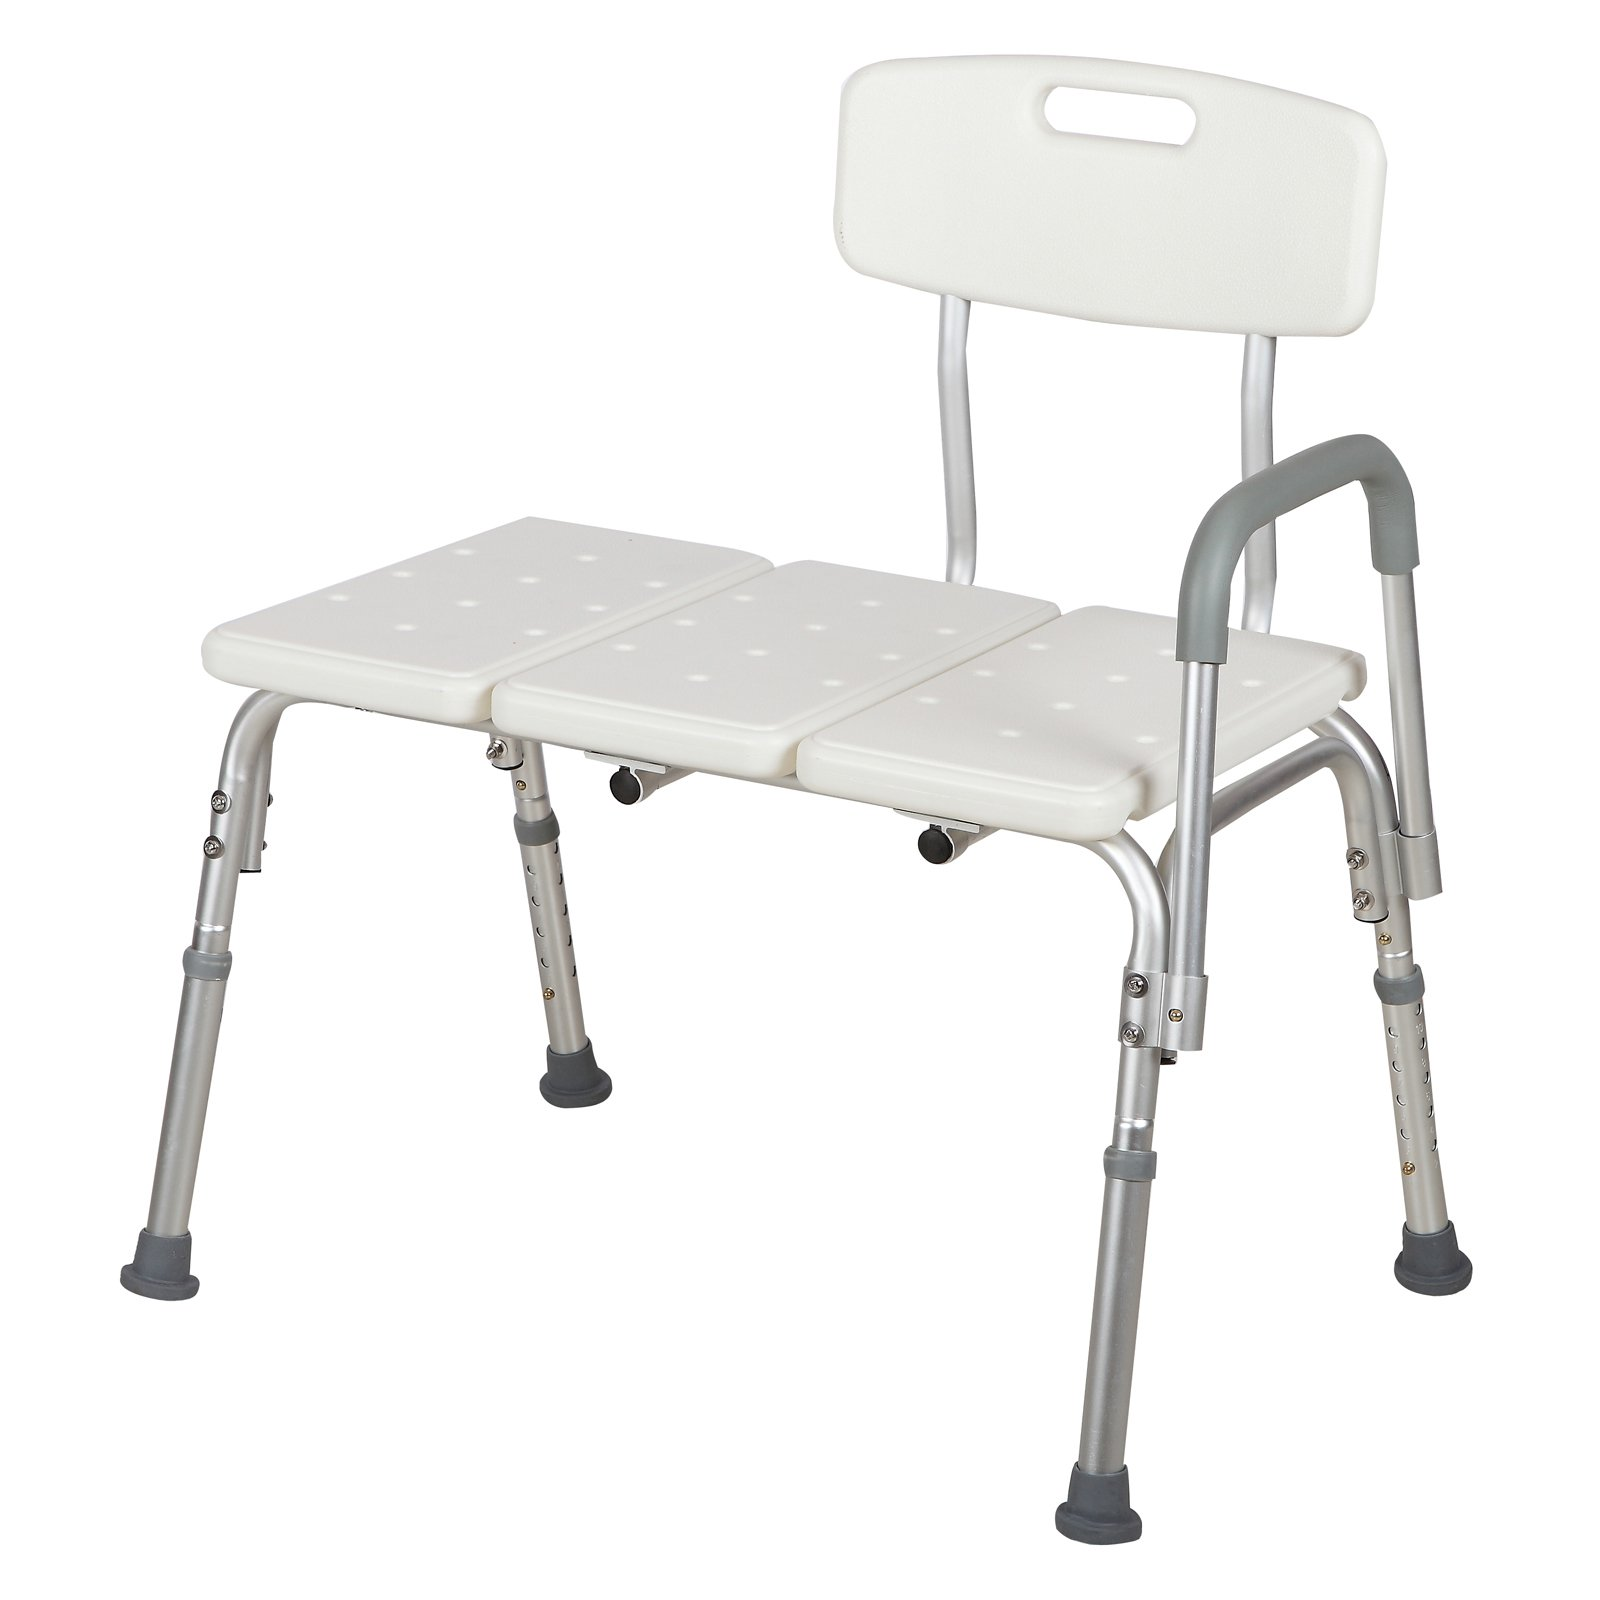 Mecor Medical Shower Chair Bathtub Seat Bench Stool 10 Height Adjustable Bath Lift Chair with Removable Back and Arm